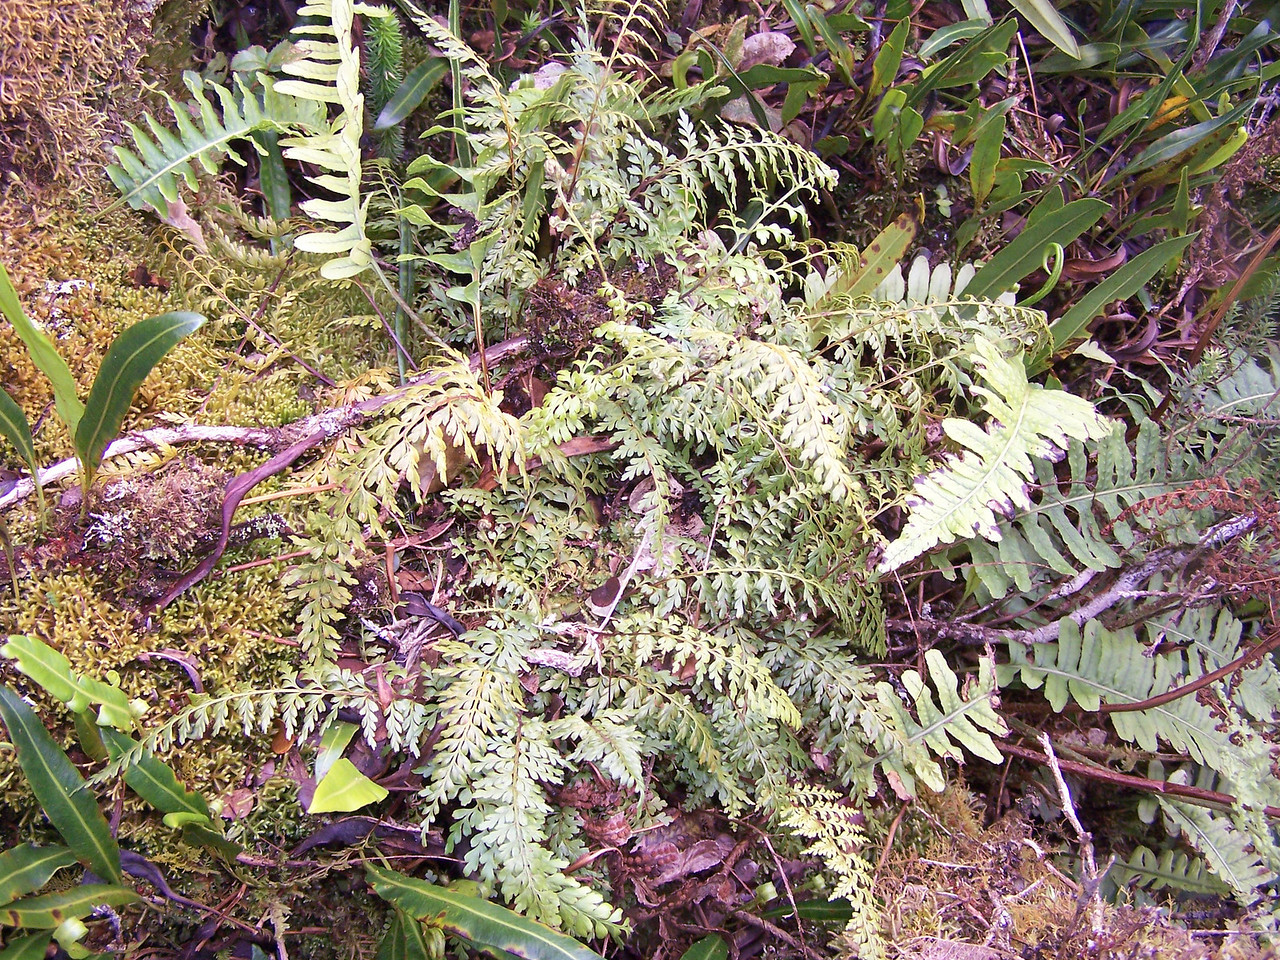 """Asplenium haleakalense (with Polypodium pellucidum and Elaphoglossum wawrae) (Maui) (HLO000378) This image is licensed under the Creative Commons Attribution-NonCommercial 3.0 Unported license.  You may share and adapt this work, but only with attribution (""""by Hank L. Oppenheimer"""") and only for non-commercial purposes unless permission is obtained from the copyright-holder (contact webmaster@hear.org)."""